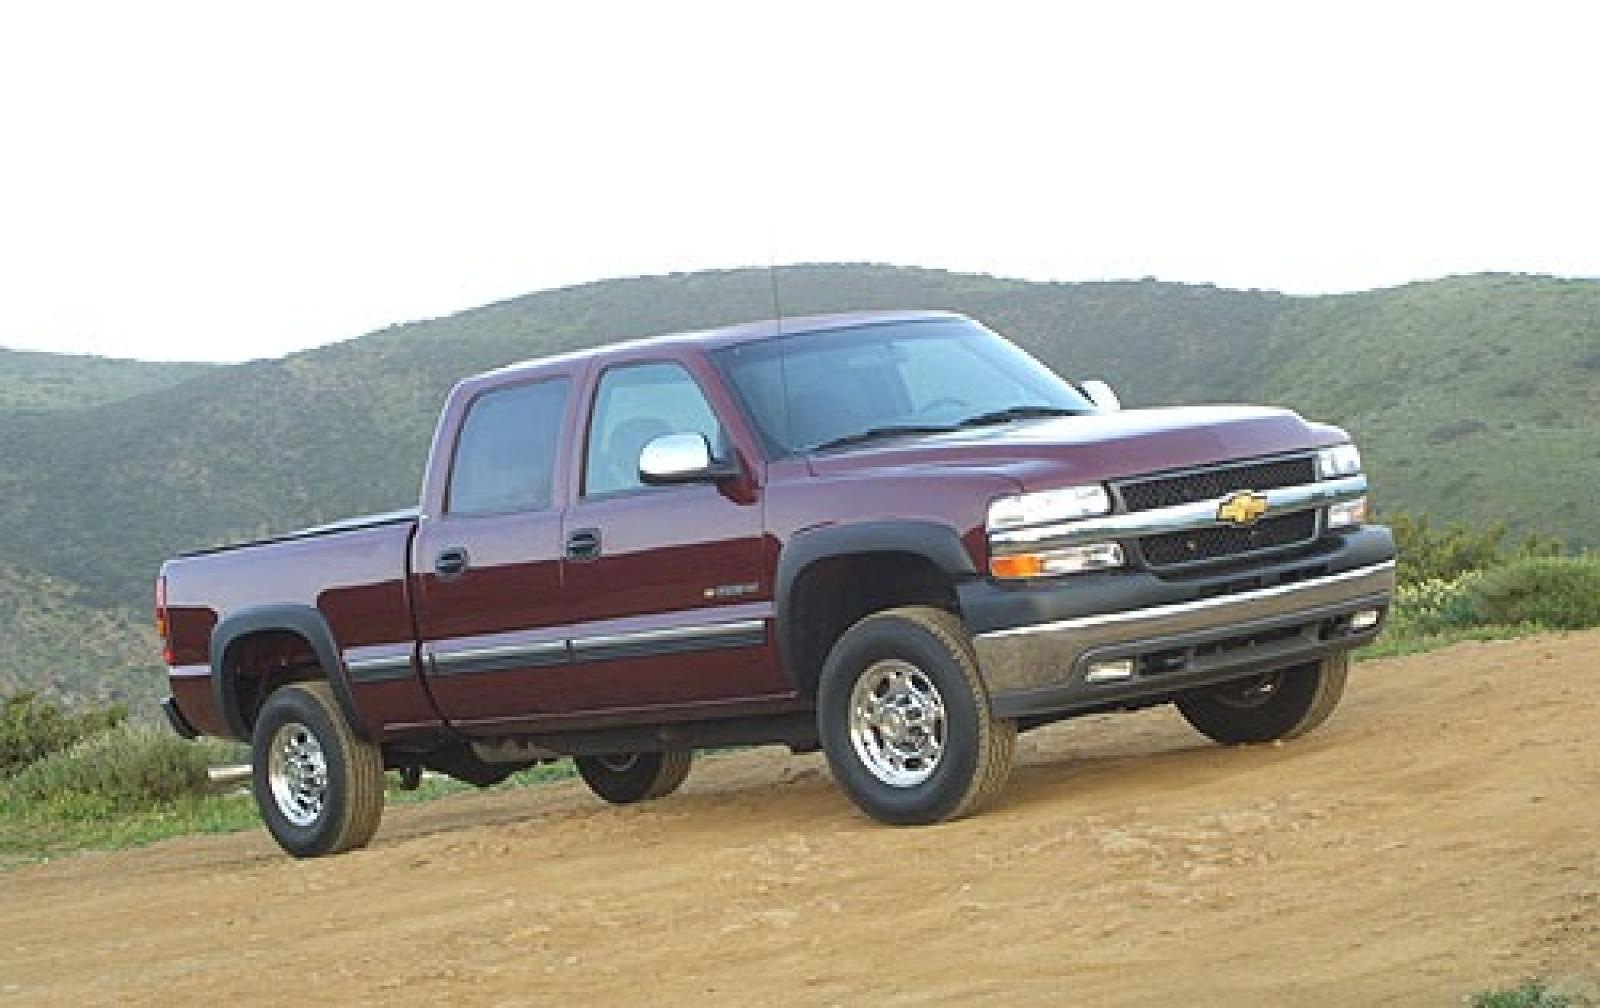 2002 chevrolet silverado 2500hd information and photos. Black Bedroom Furniture Sets. Home Design Ideas